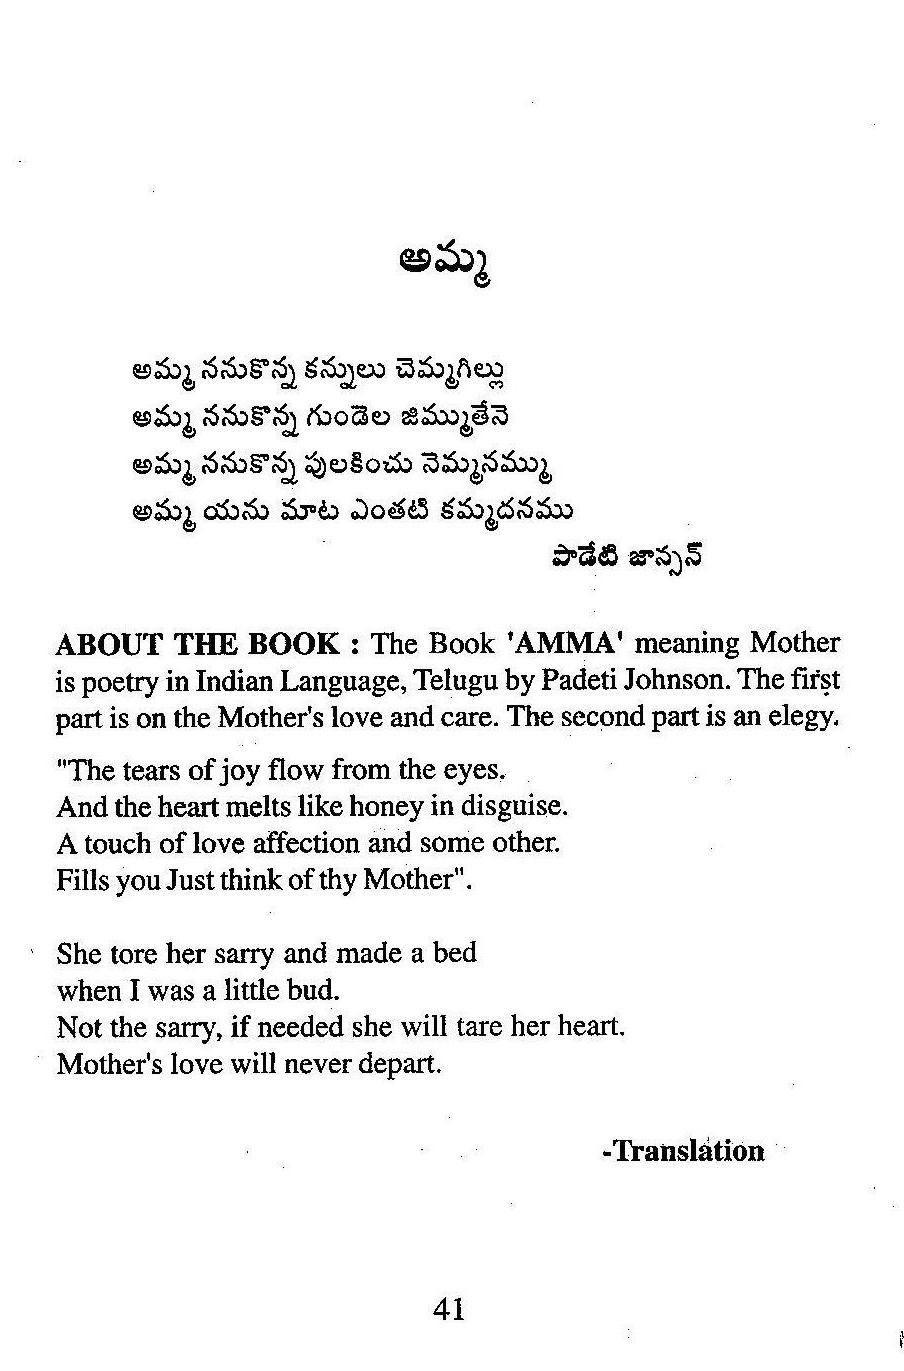 to mother poem summary